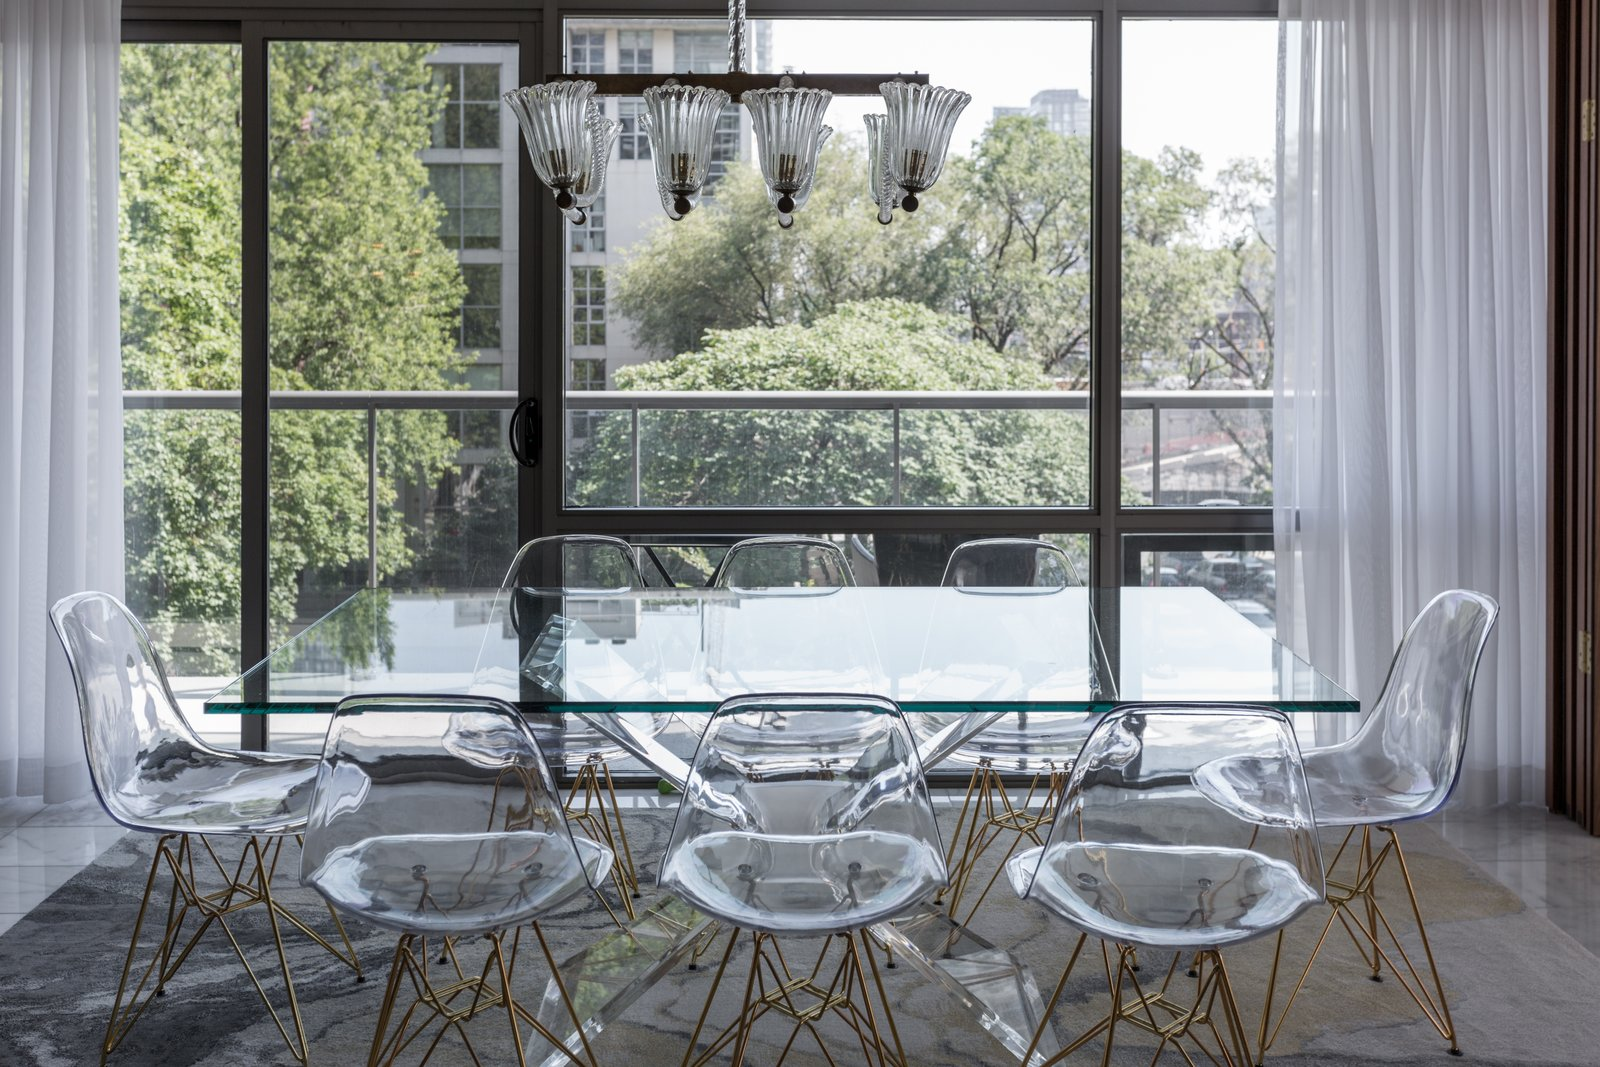 There was a great will to keep things transparent and open - which lead to a glass dining table and clear dining chairs.  Thompson Hotel Private Suite by ANTHONY PROVENZANO ARCHITECTS